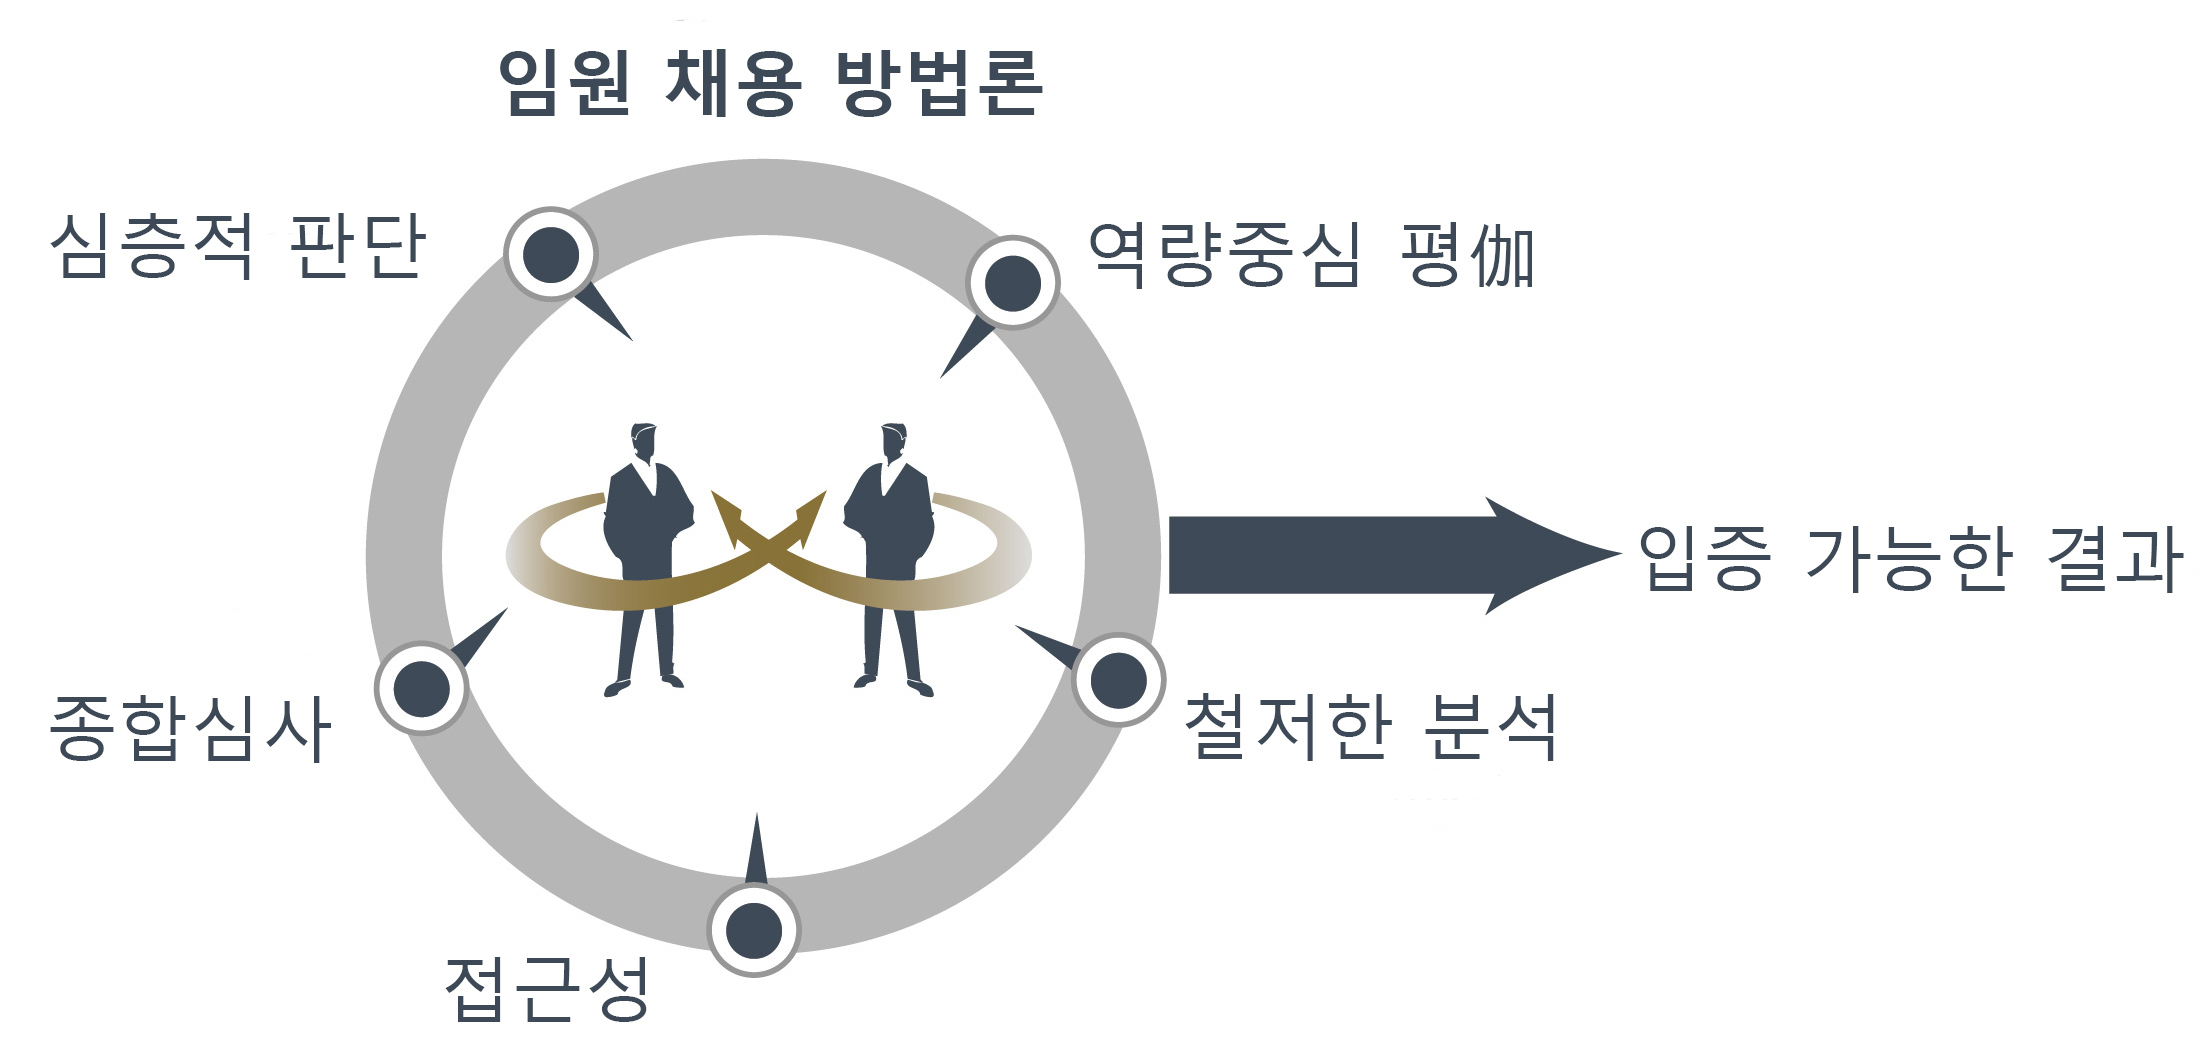 Executive Search Methodology Image Korean